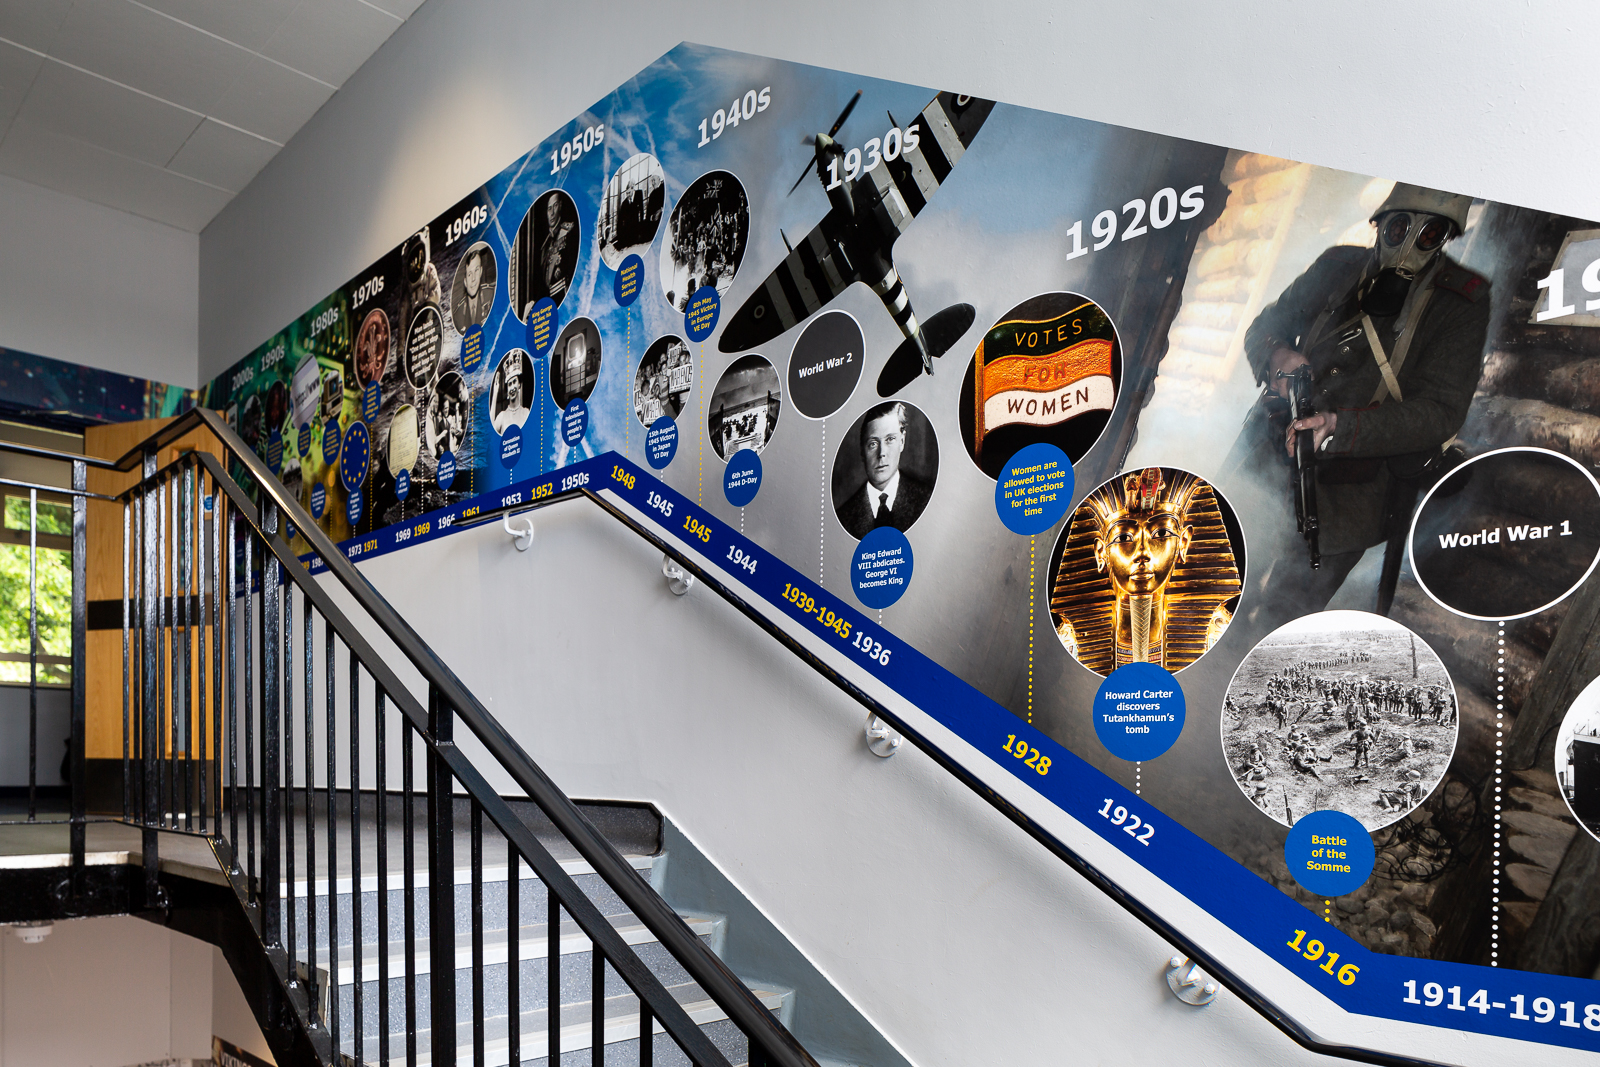 Image of school corridor featuring a historical wall art feature